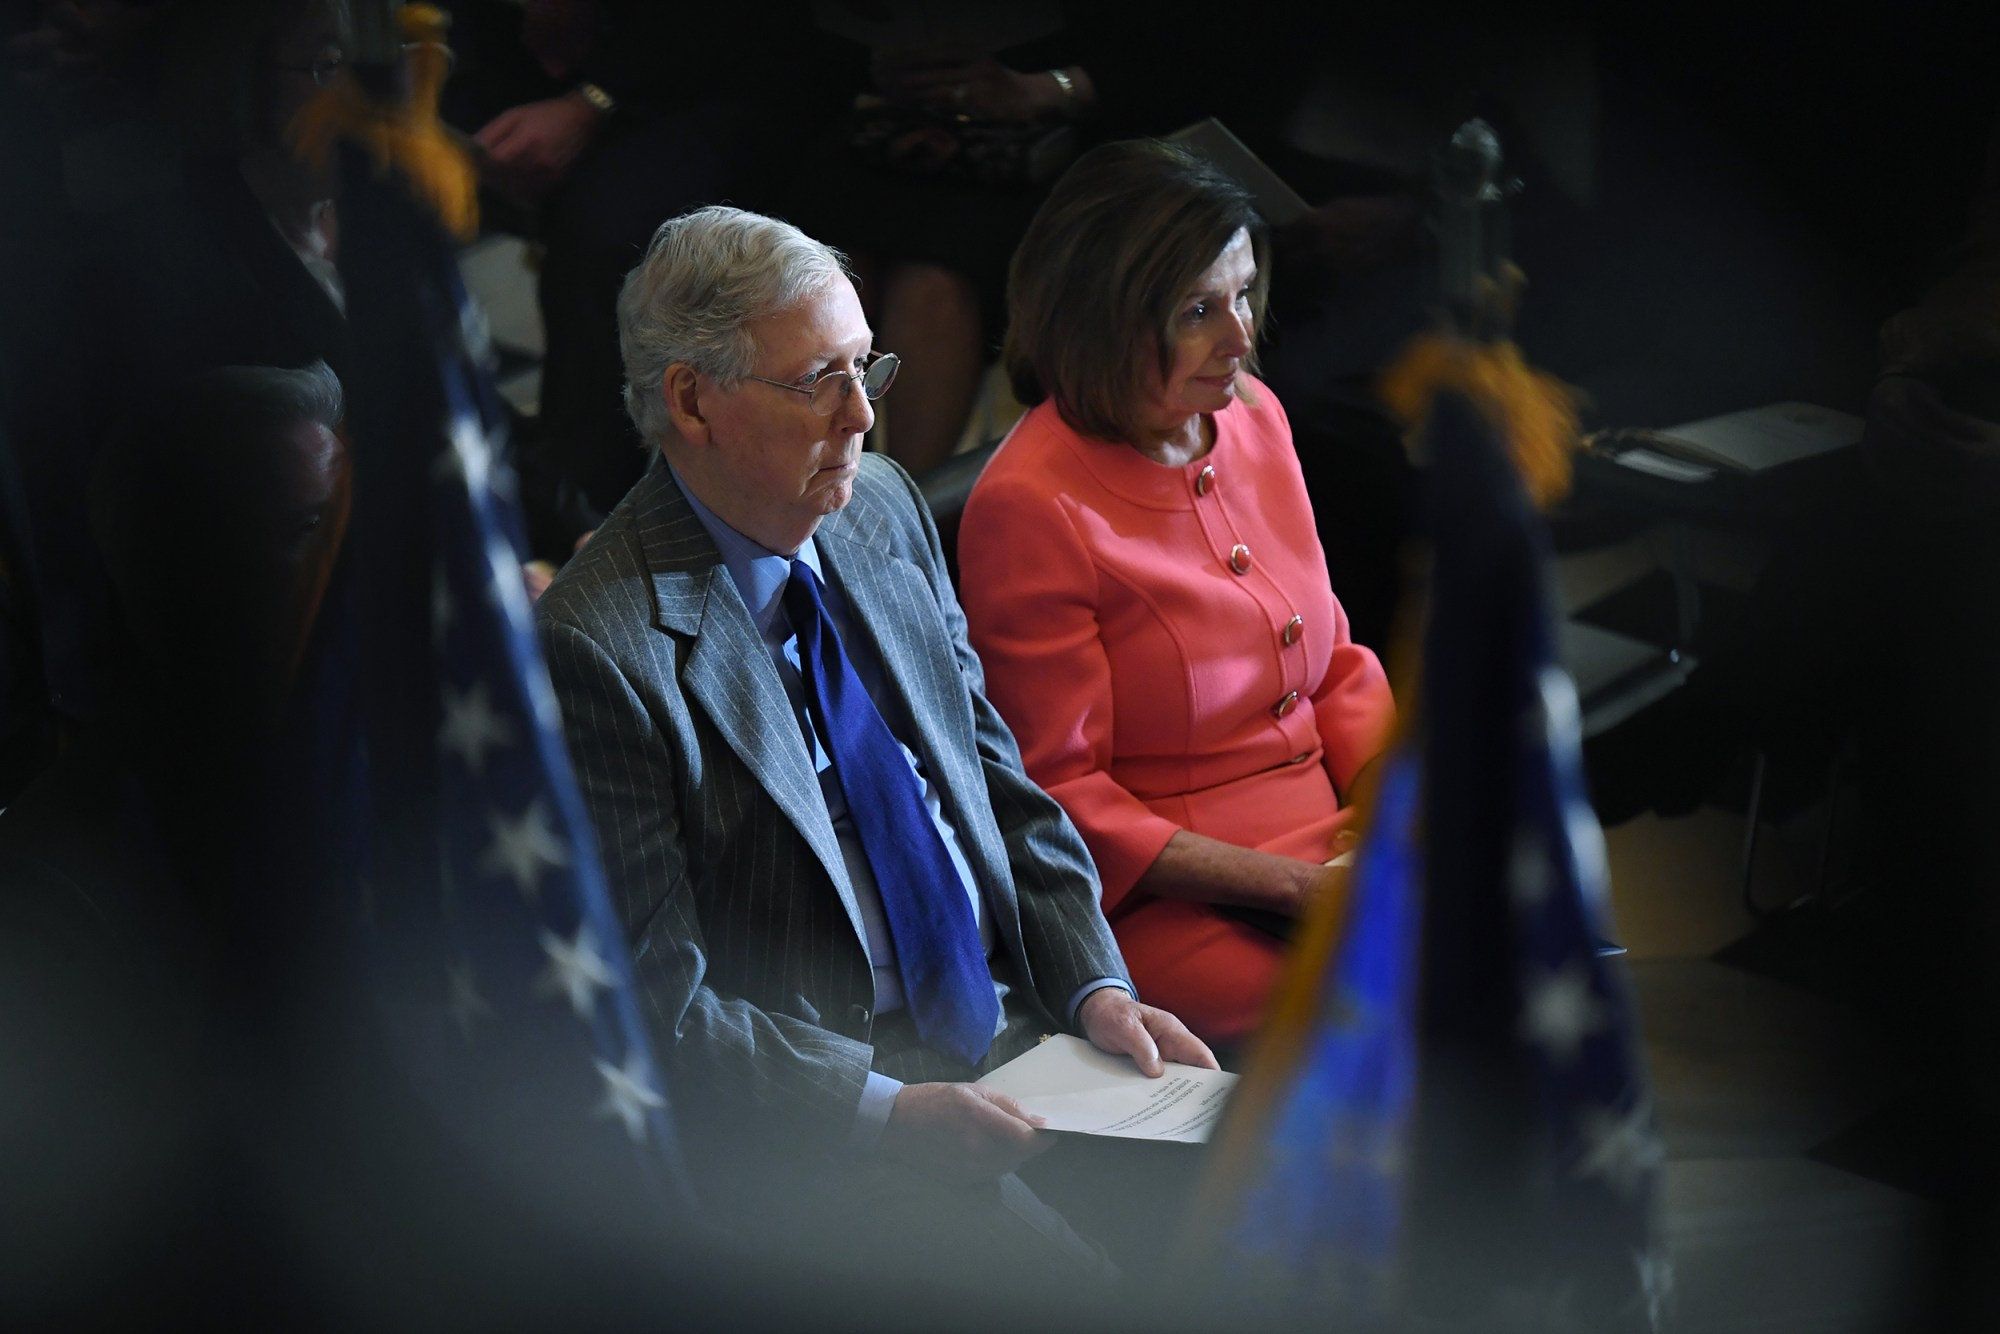 Democrats Accuse Republicans of 'Bad Faith' As They Invoke National Debt to Pause Pandemic Aid 200513-mcconnell-pelosi-al-1225_ee9a786ca4645bc8b39b5491a4c528f4.fit-2000w